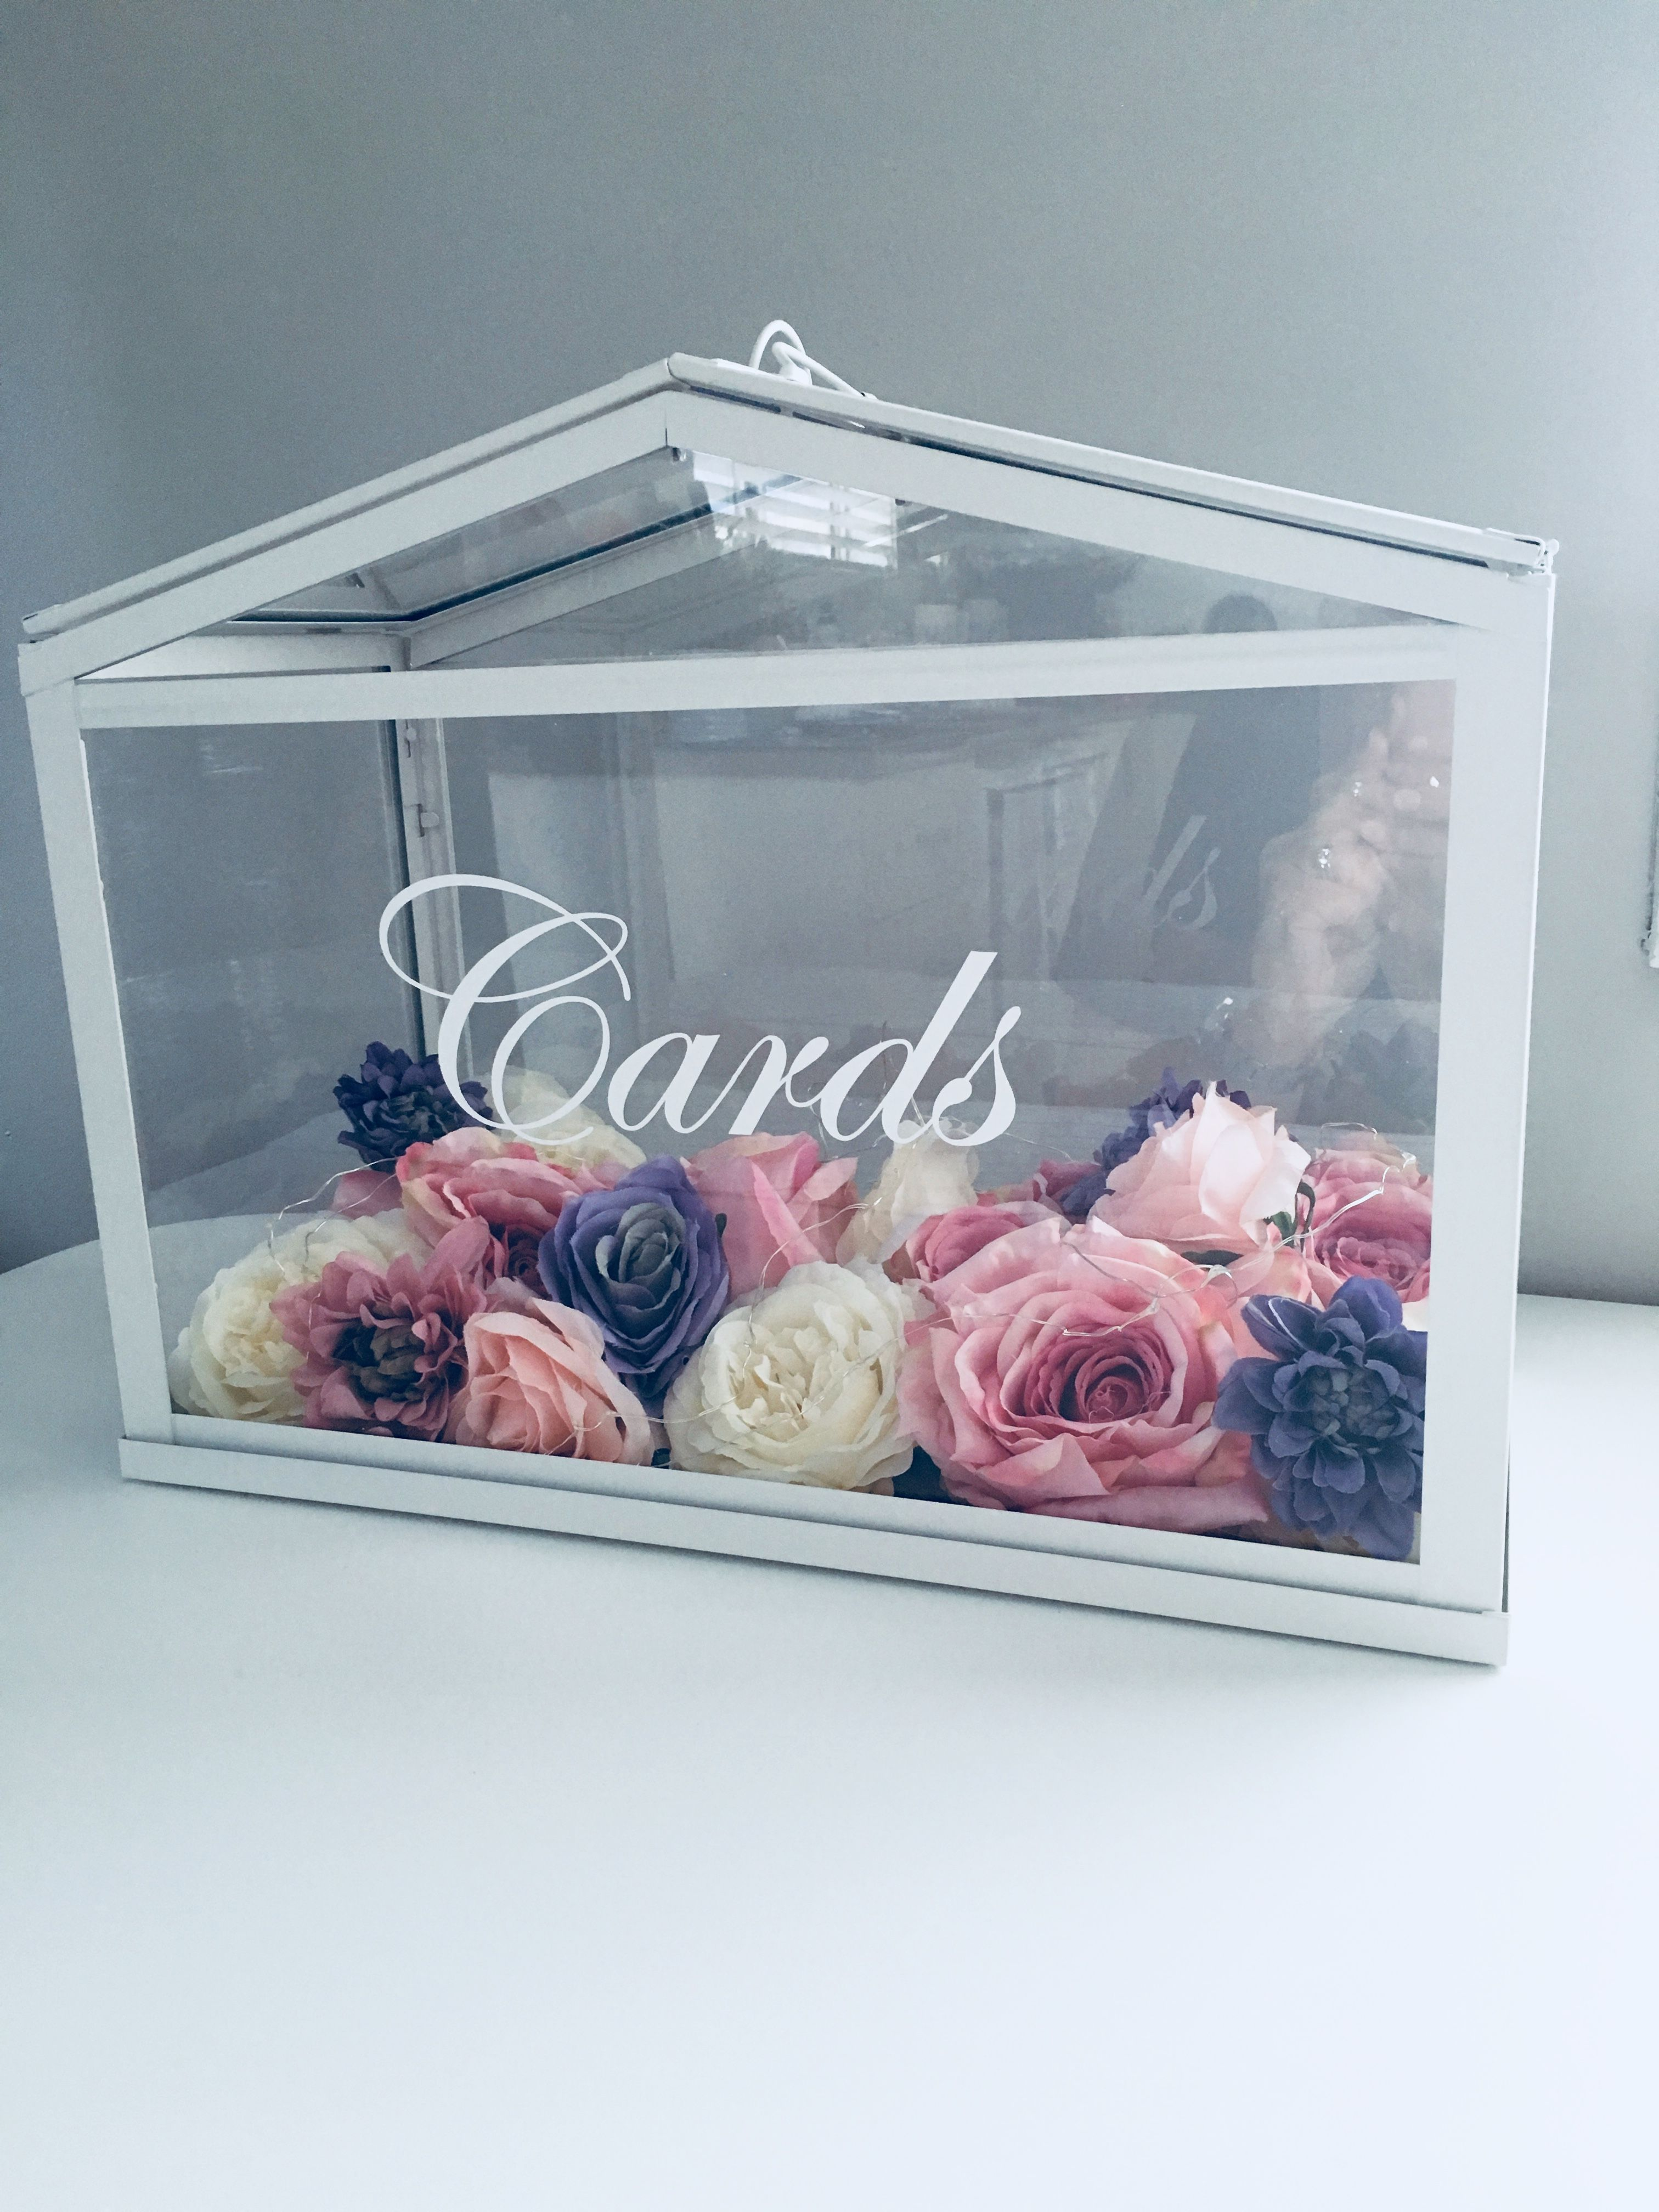 Ikea Socker Greenhouse Wishing Well Cards Box With Images